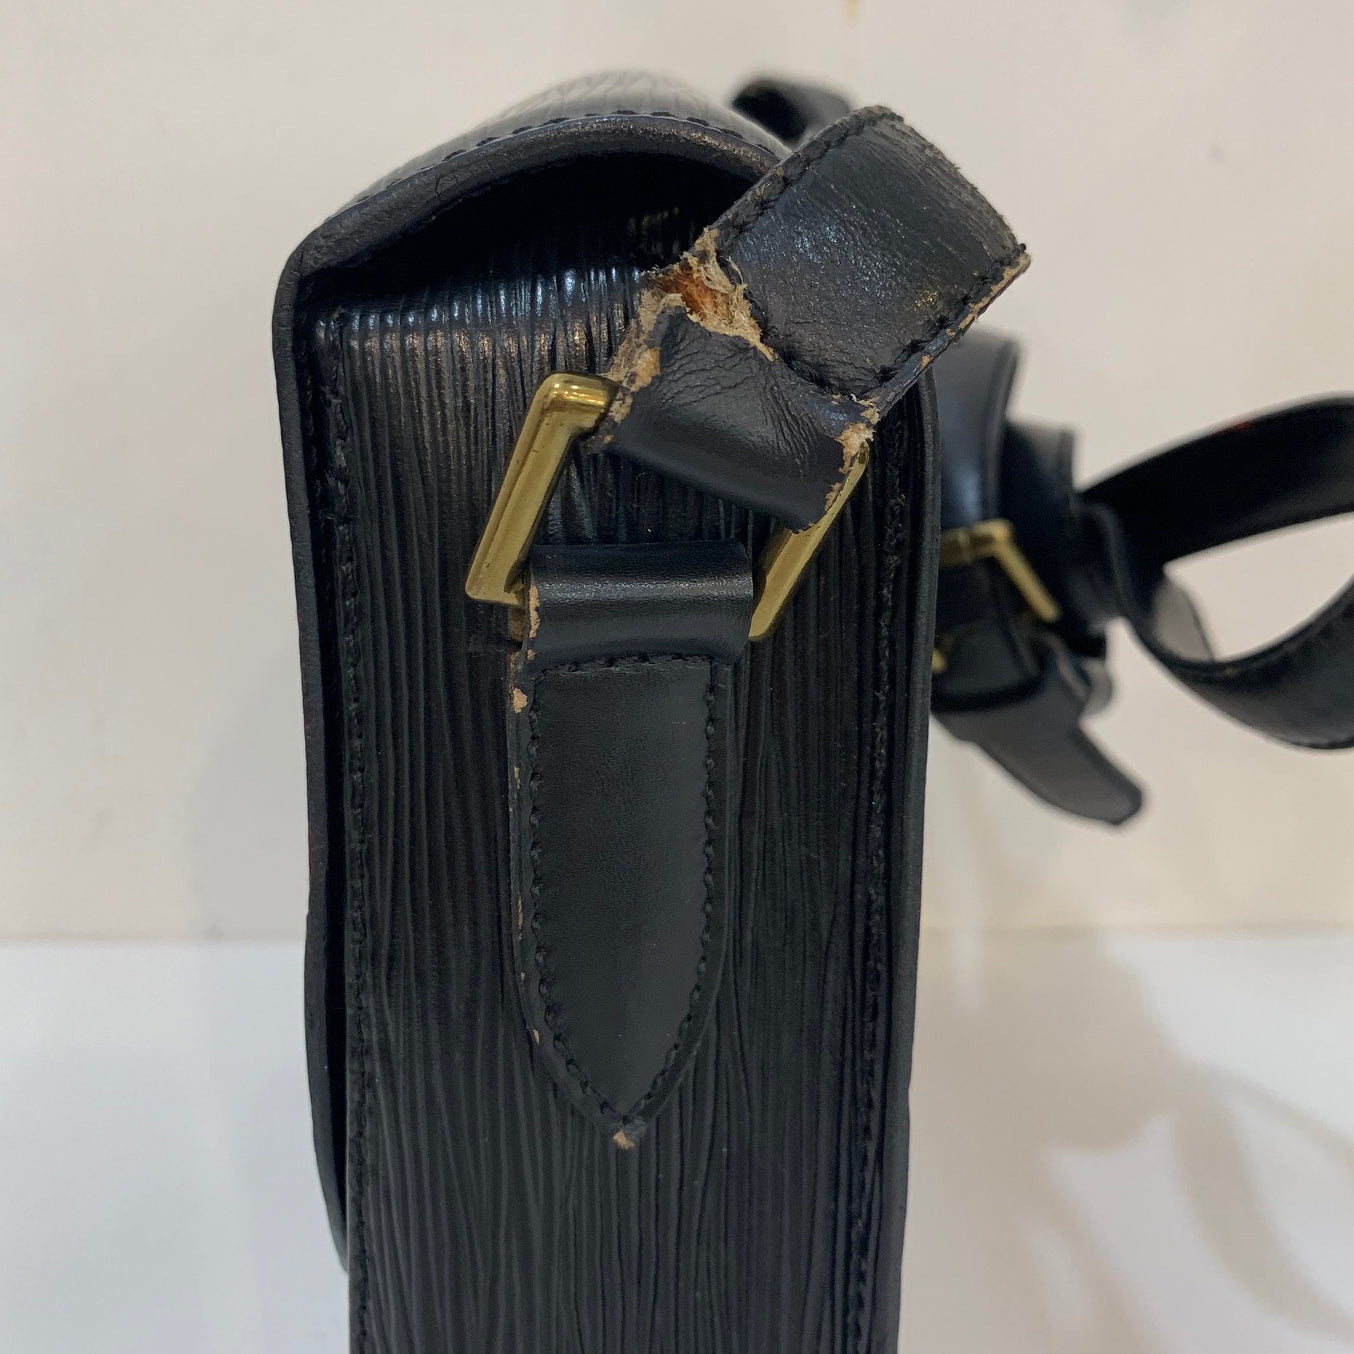 Louis Vuitton Black Epi Leather Crossbody